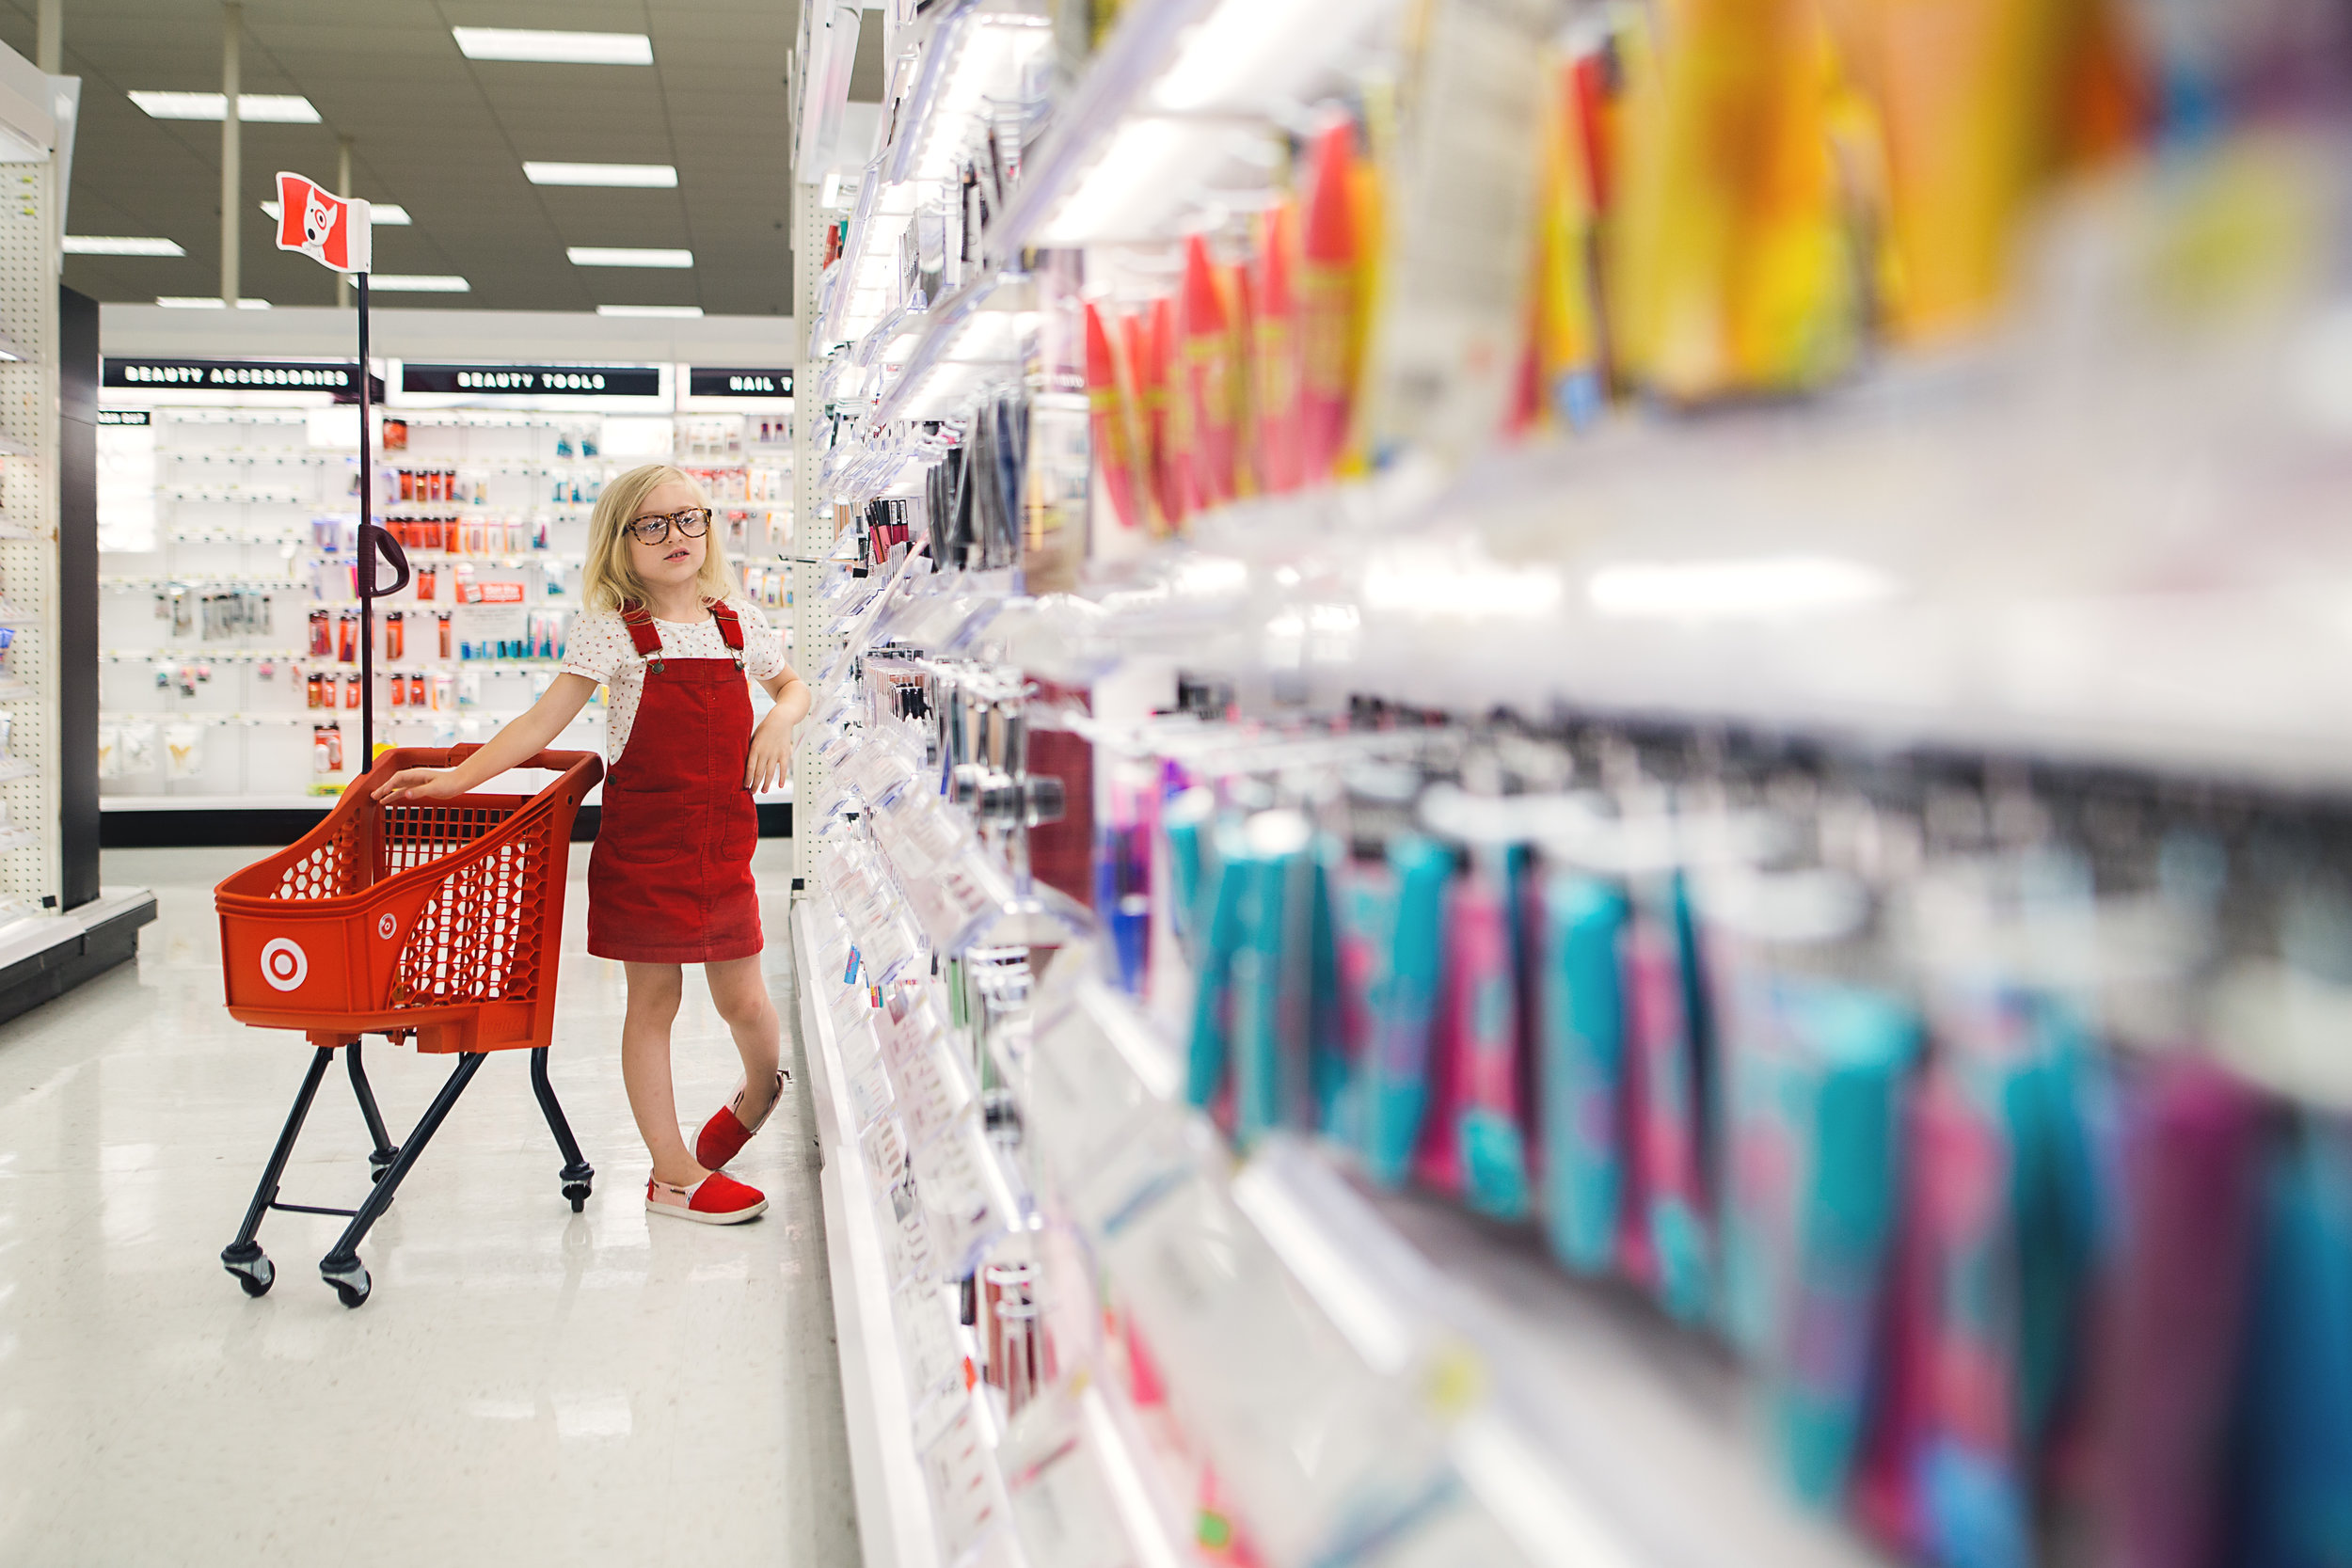 Hello-olivia-photography-Long-island-photography-children-session-family-lifestyle-red-target-mini-cart.jpg